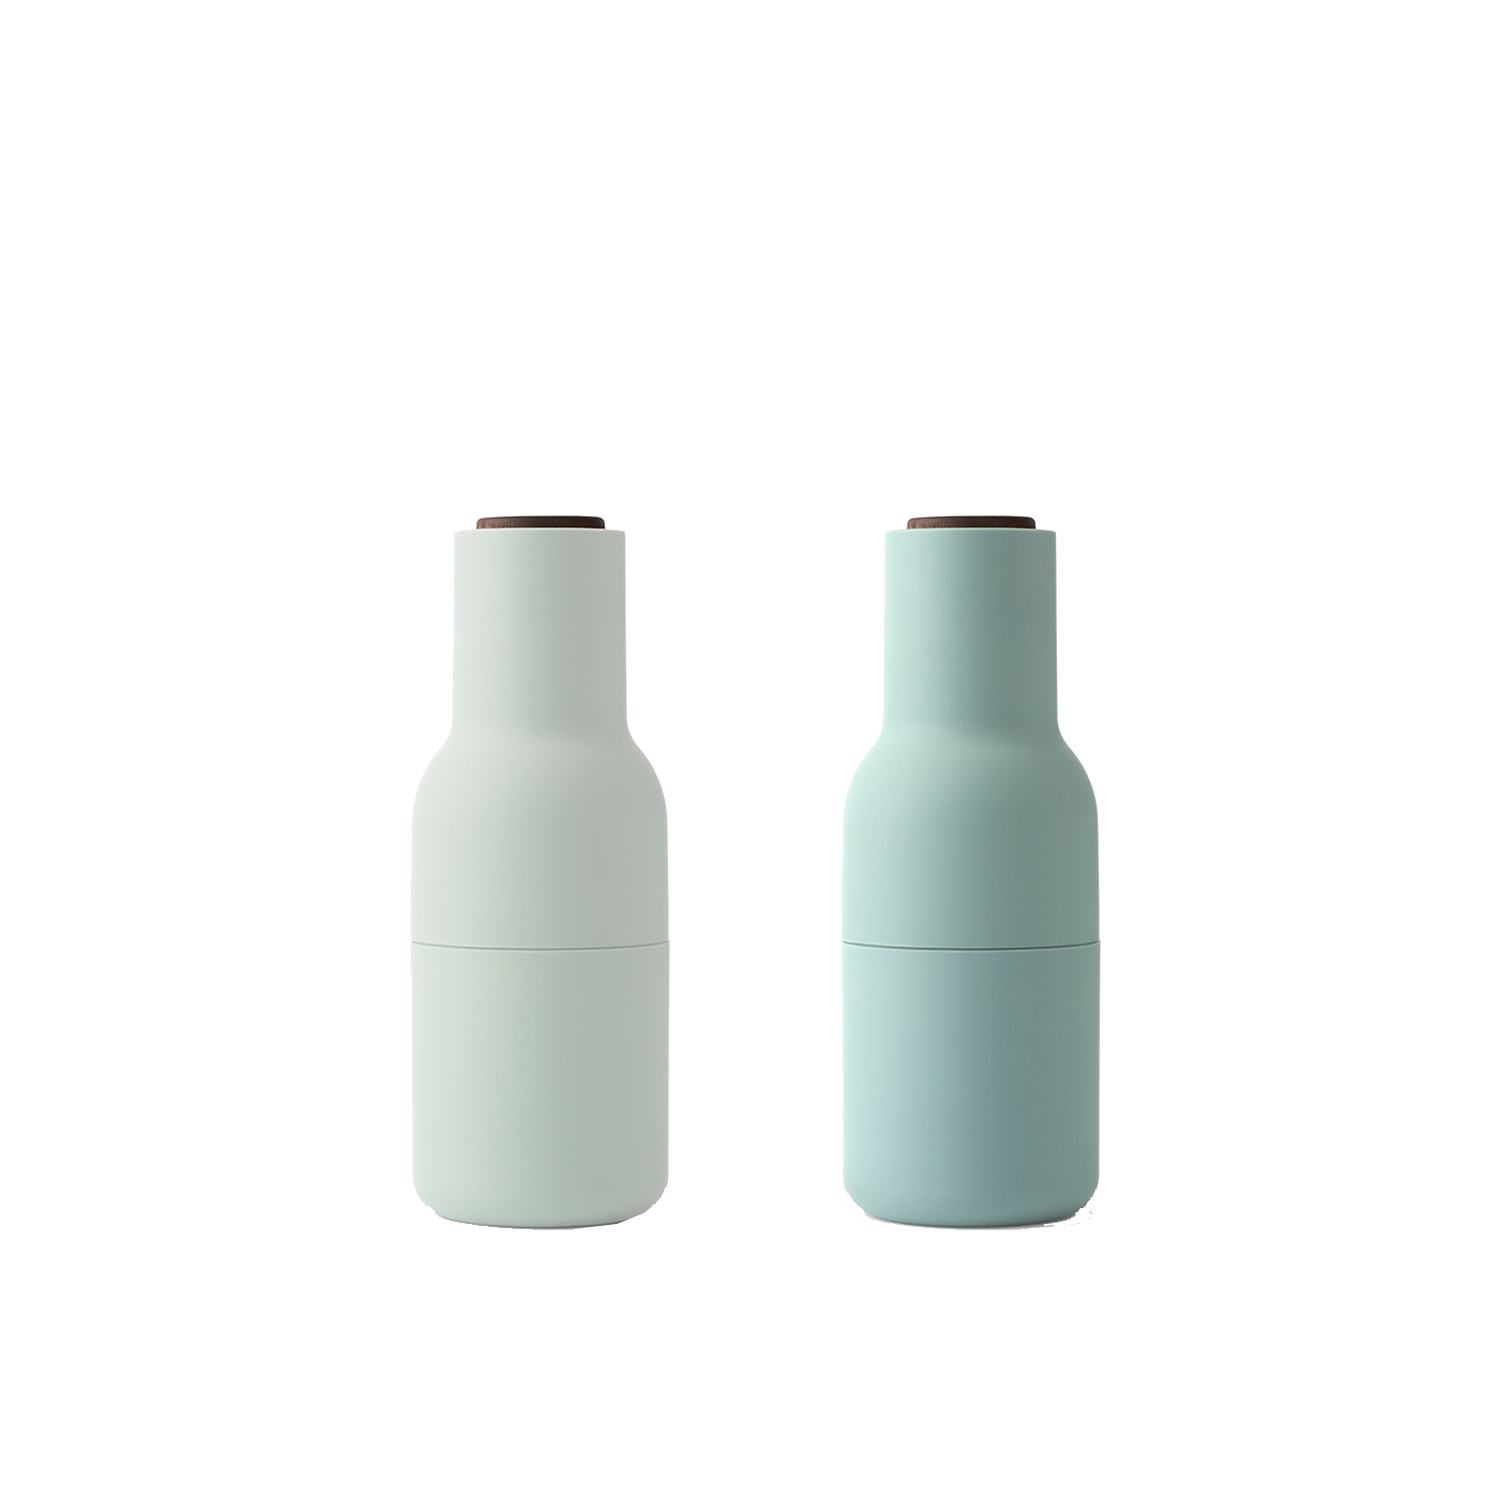 Bottle grinder 2-pack, mossgrön/valnöt